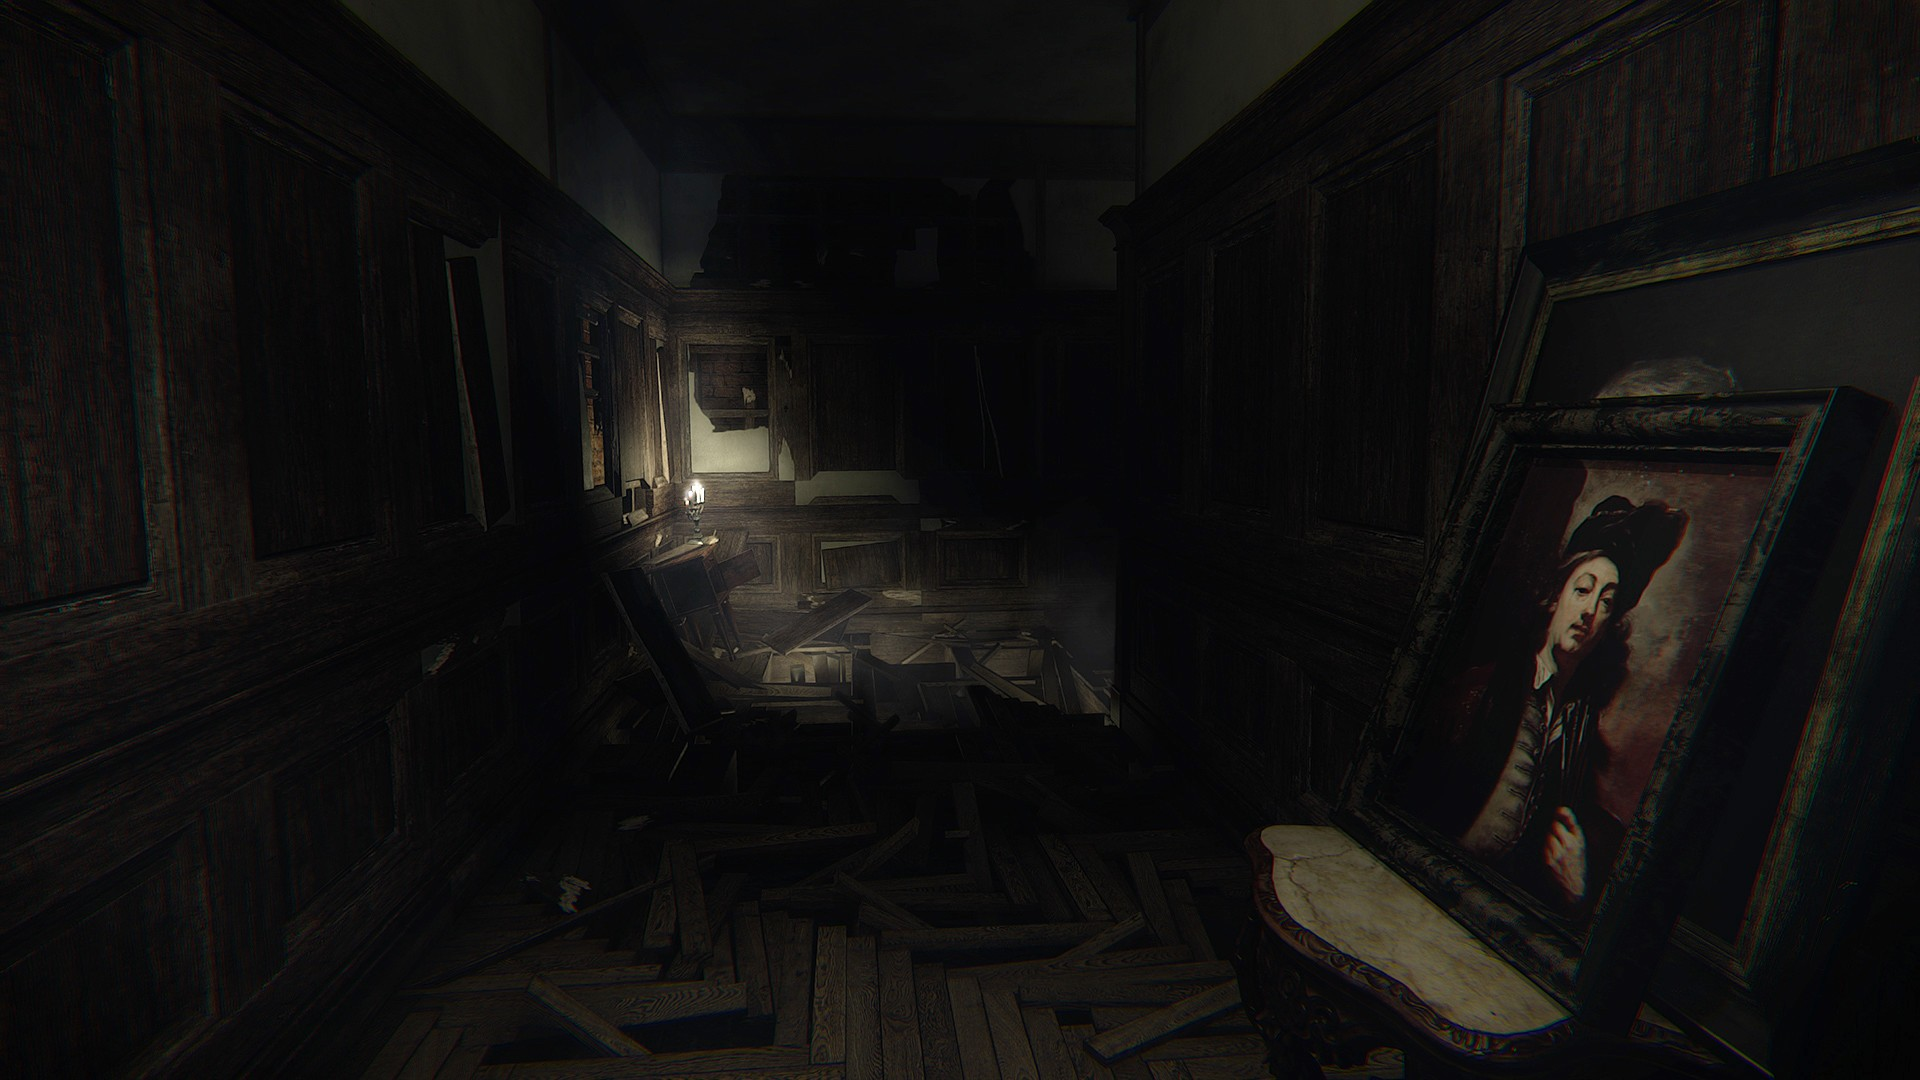 Arte Krankes Video Layers Of Fear